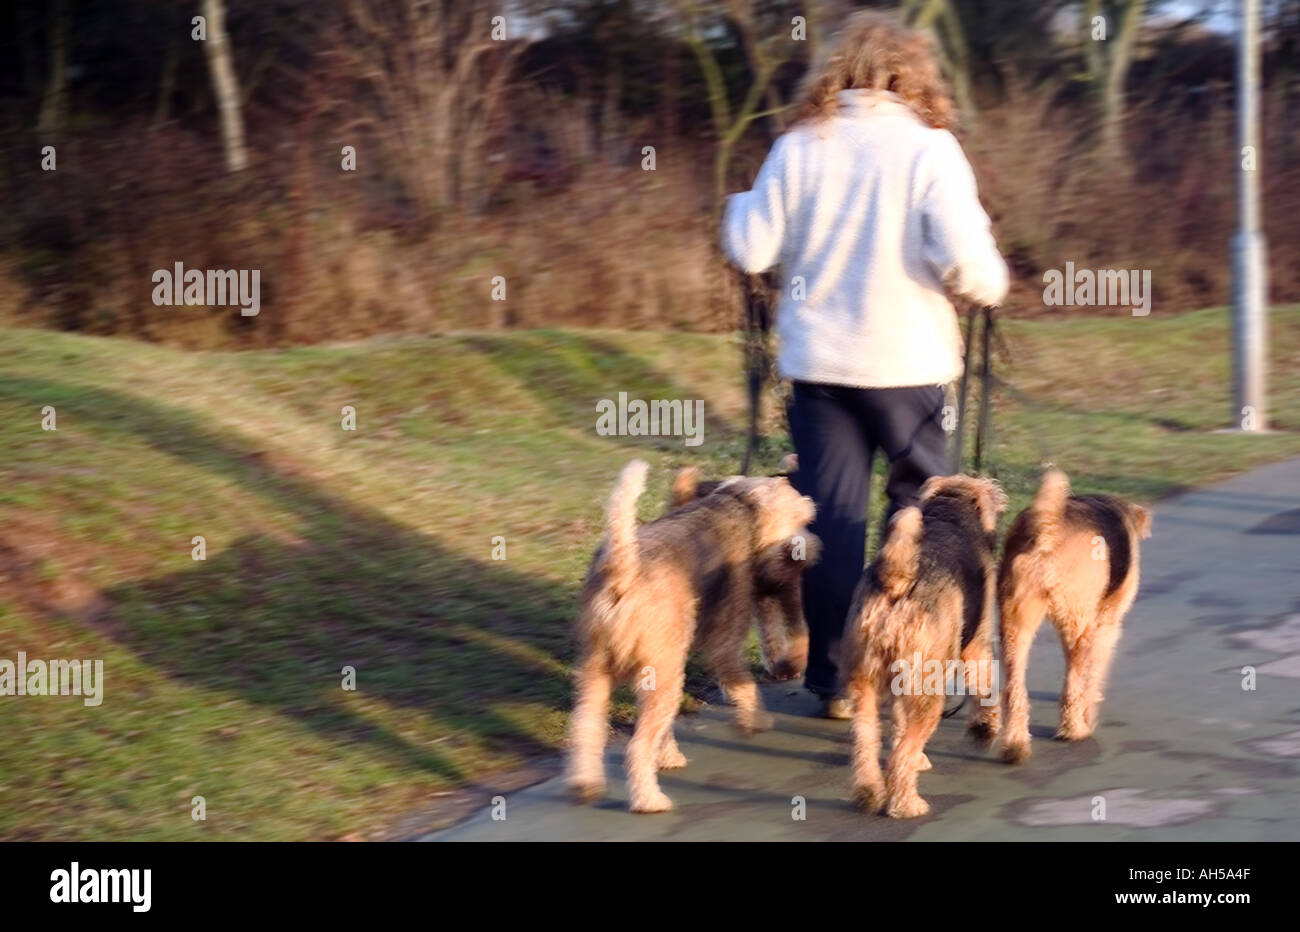 woan walking dogs arrow valley country park redditch worcestershire - Stock Image